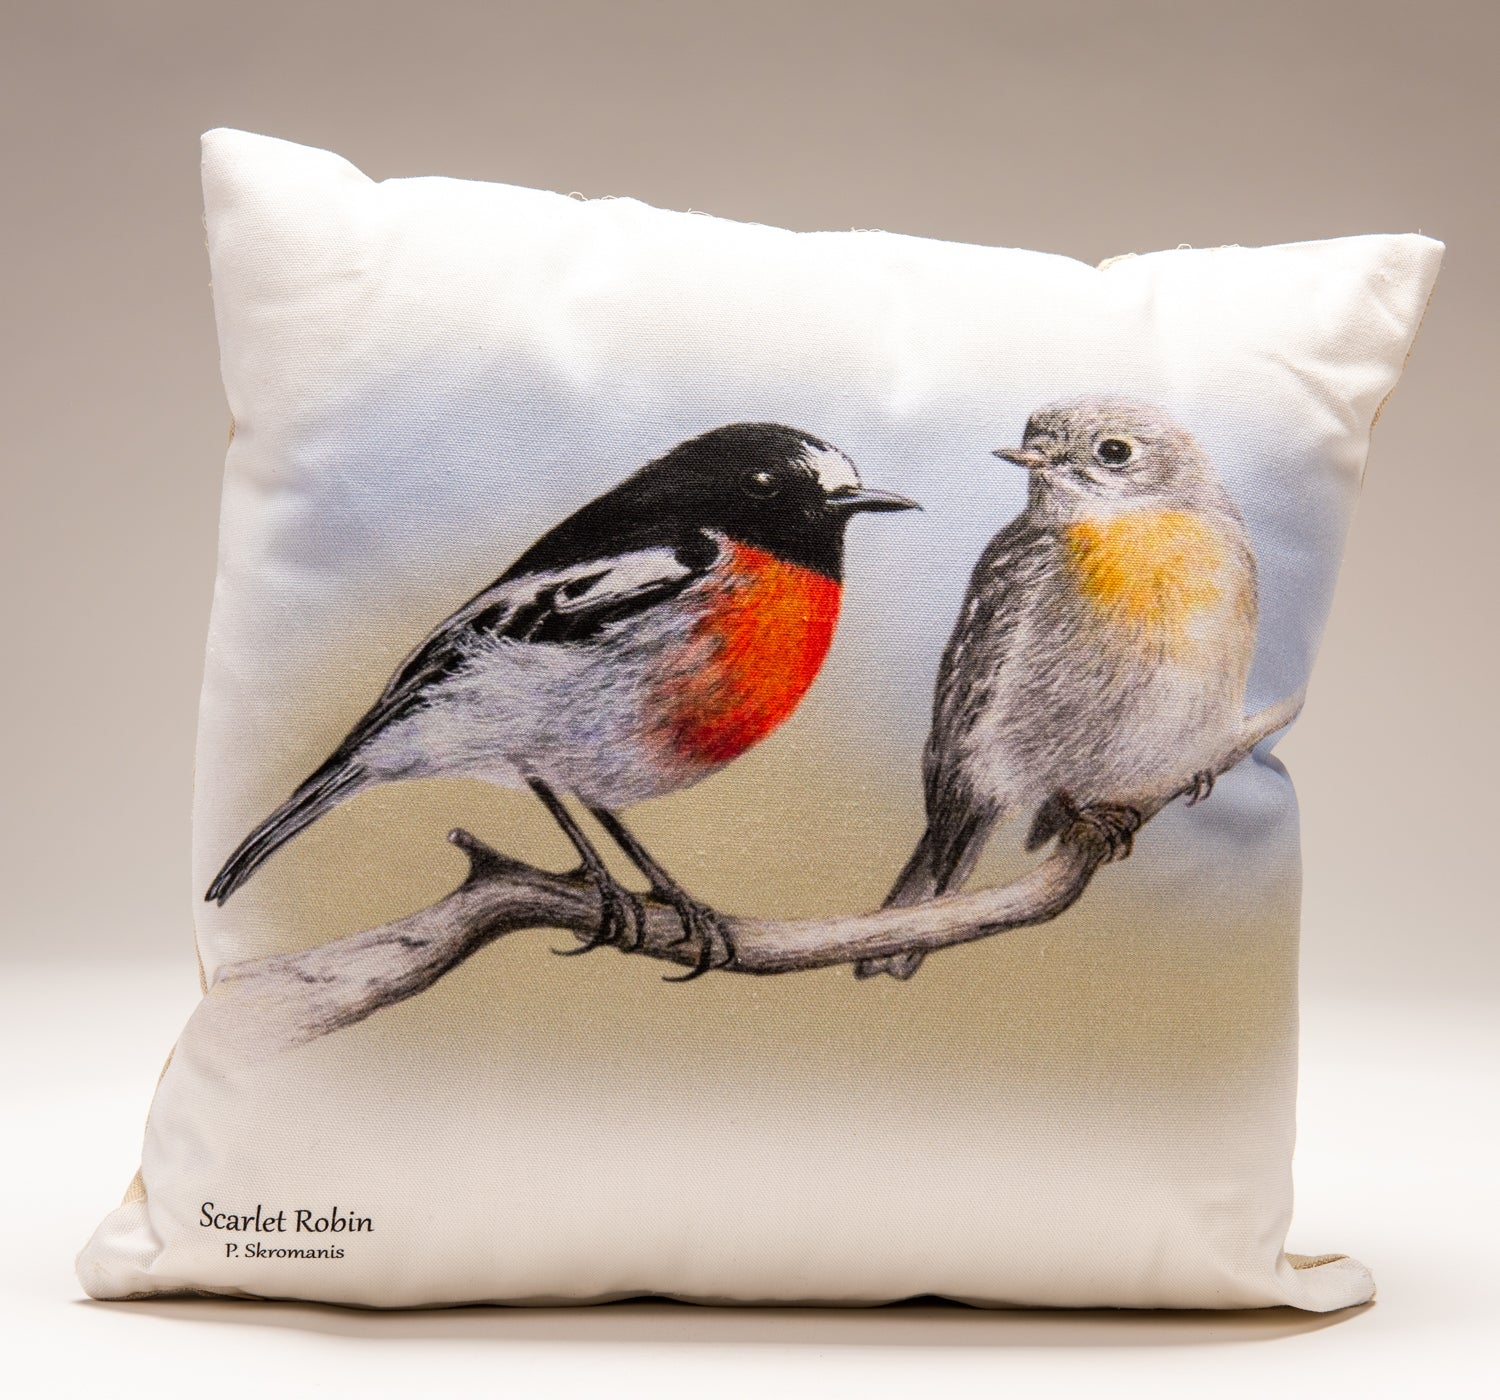 Cushion Covers - Scarlet Robin